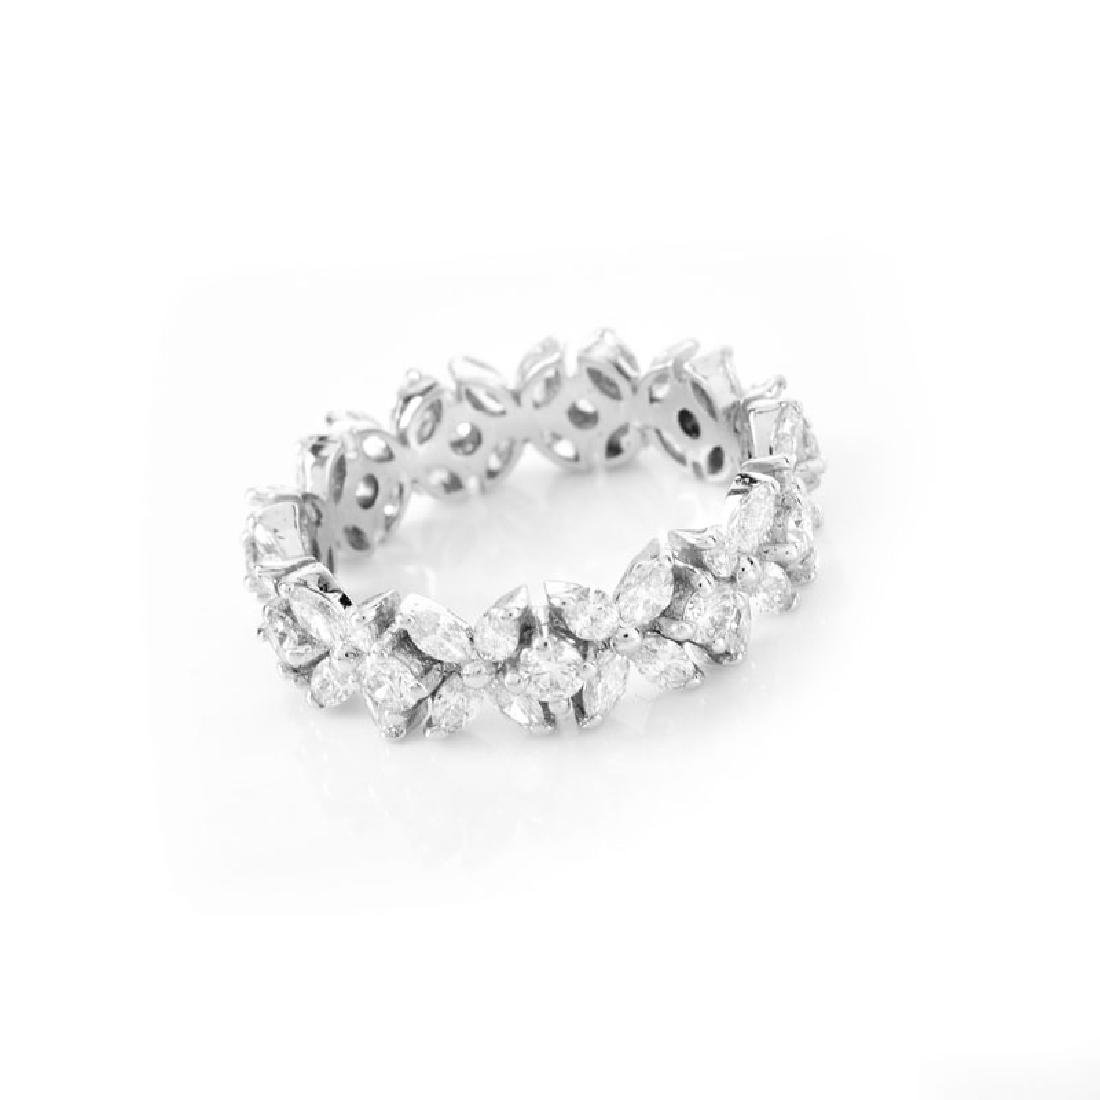 Approx. 2.80 Carat TW Marquise and Round Brilliant Cut - 3